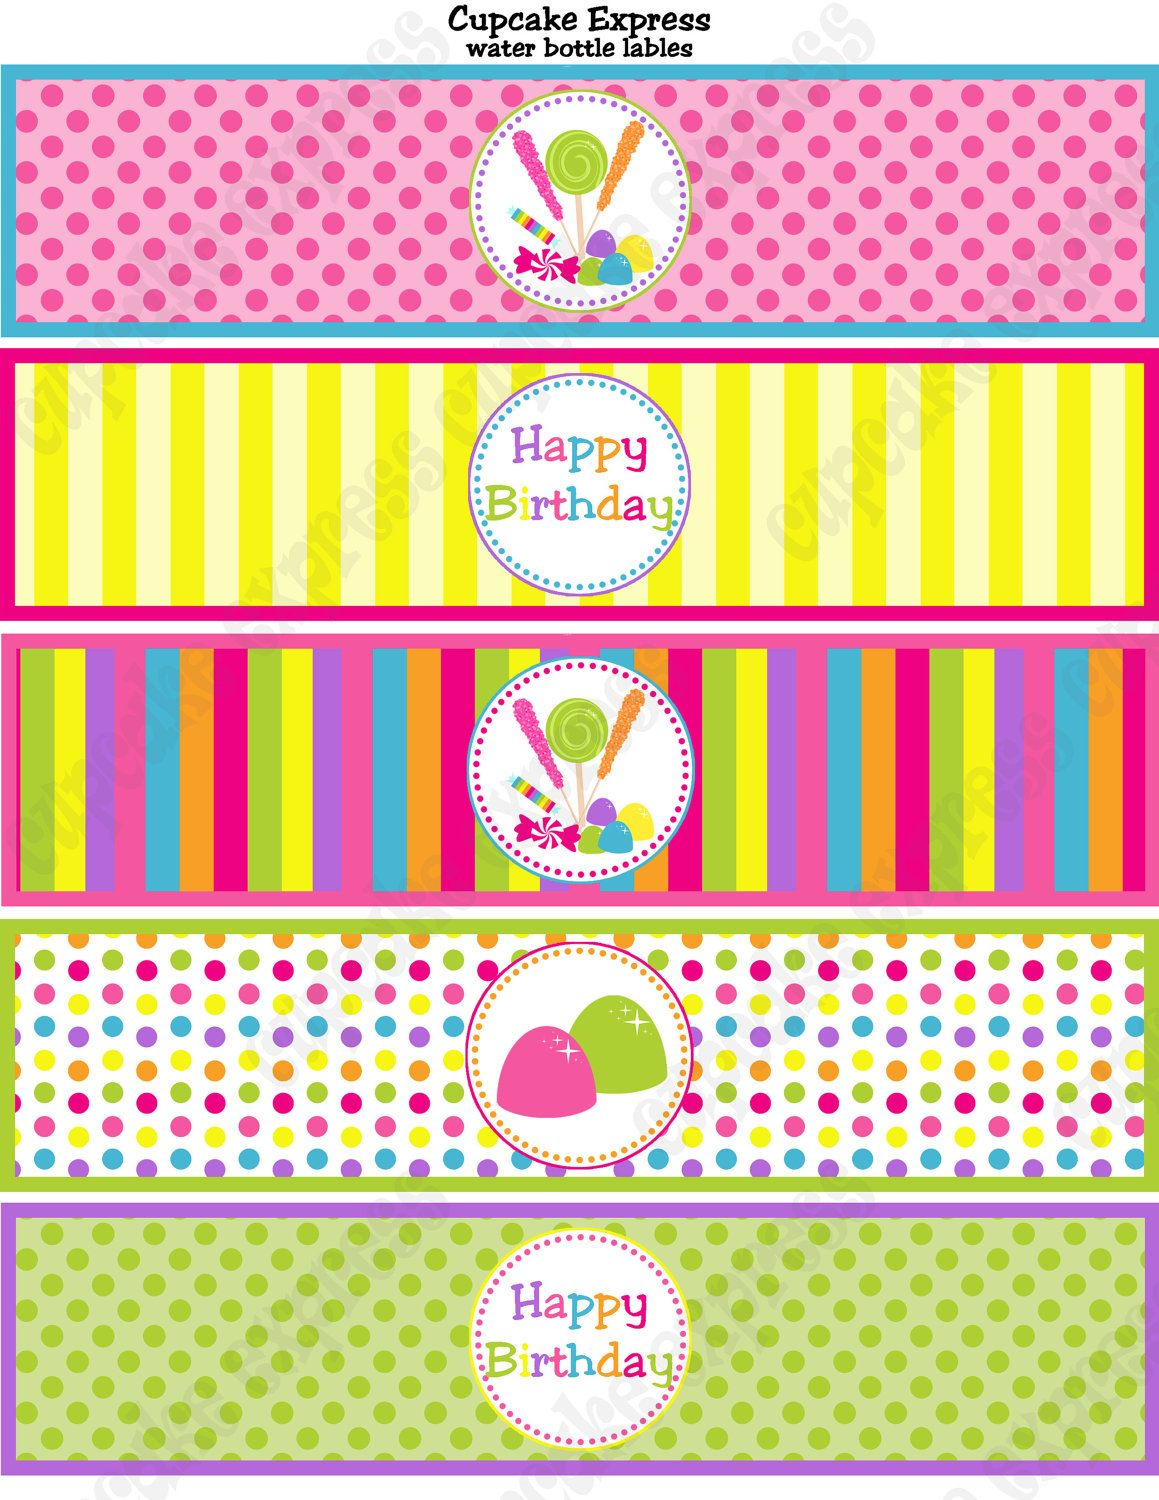 photo relating to Free Printable Water Bottle Labels for Birthday called Graphic consequence for candyland no cost printables Candyland